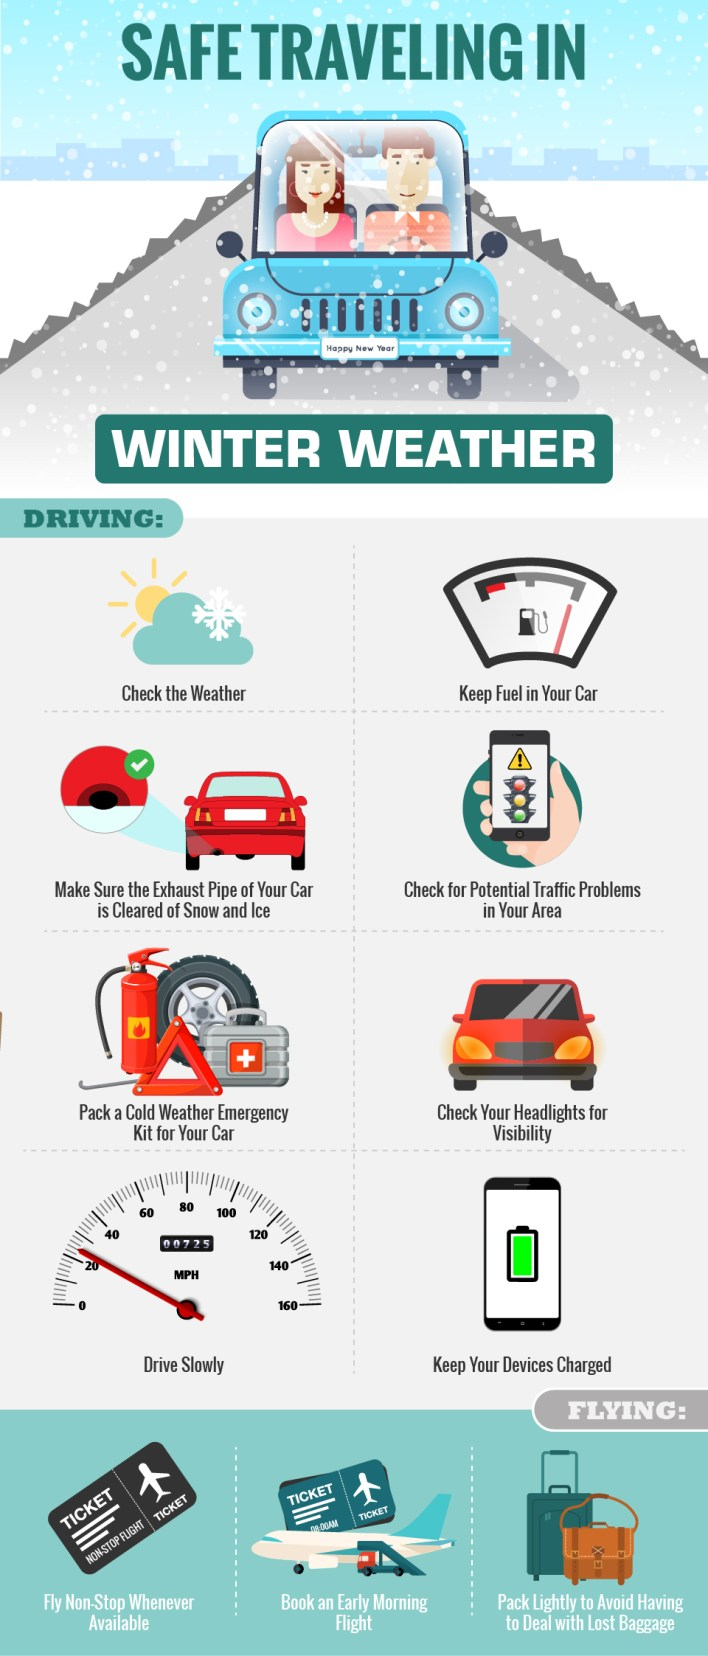 Safe Traveling in Winter Weather